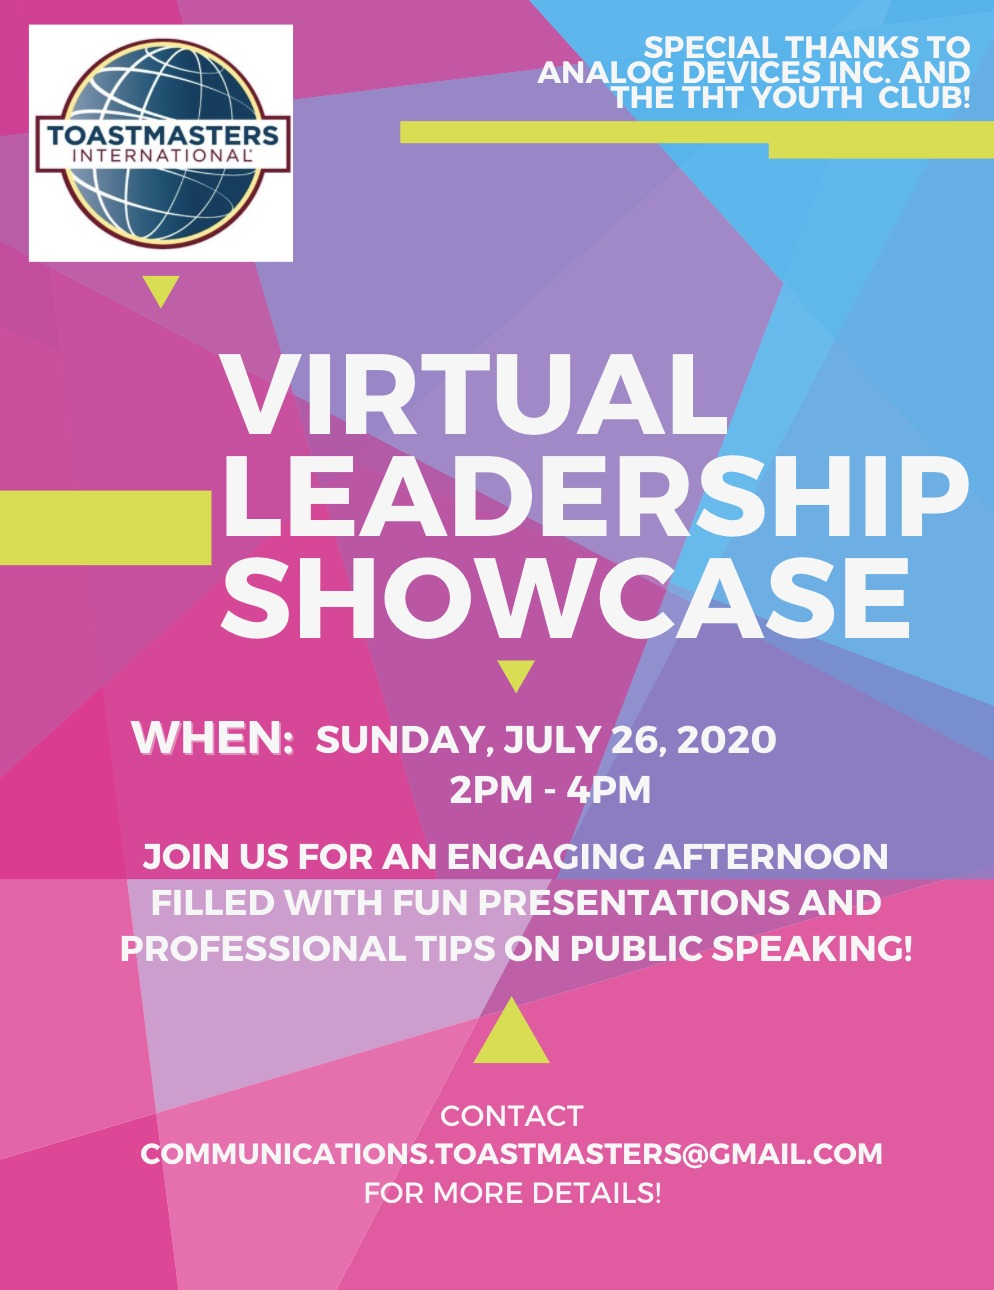 THT Youth Club's Virtual Leadership Showcase